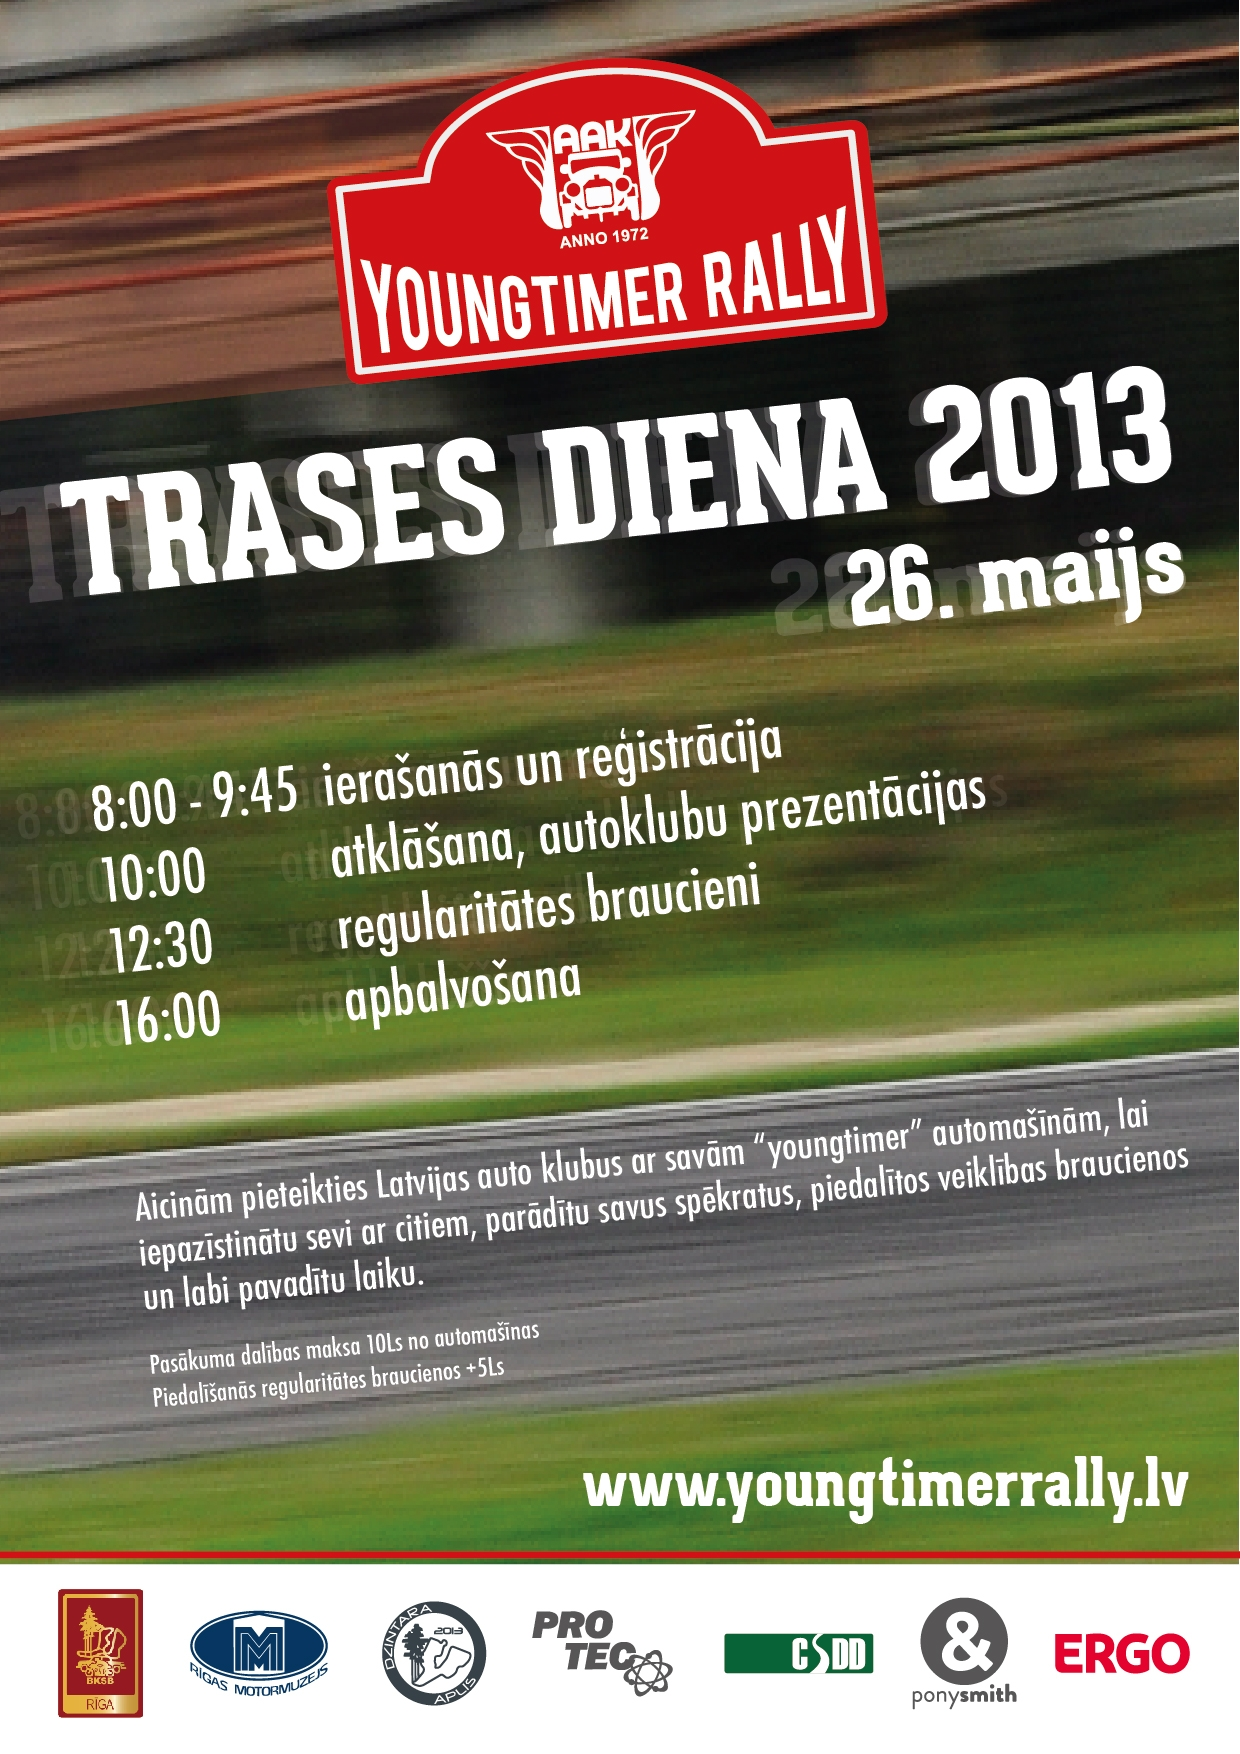 Youngtimer Rally Trases diena 2013